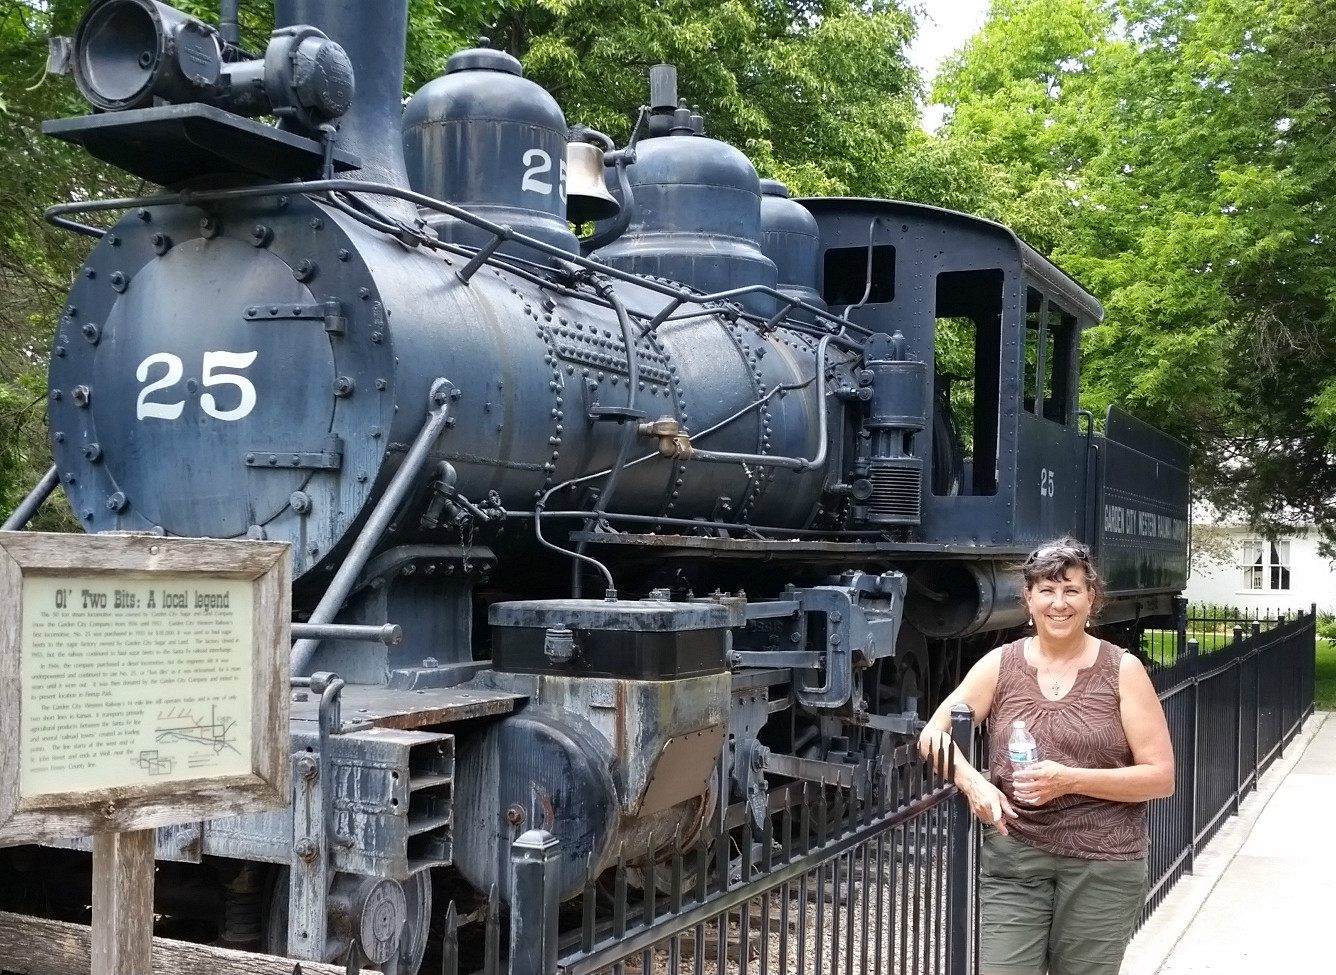 2016-05-22 13.54.14 Sherry by train in Garden City zoo